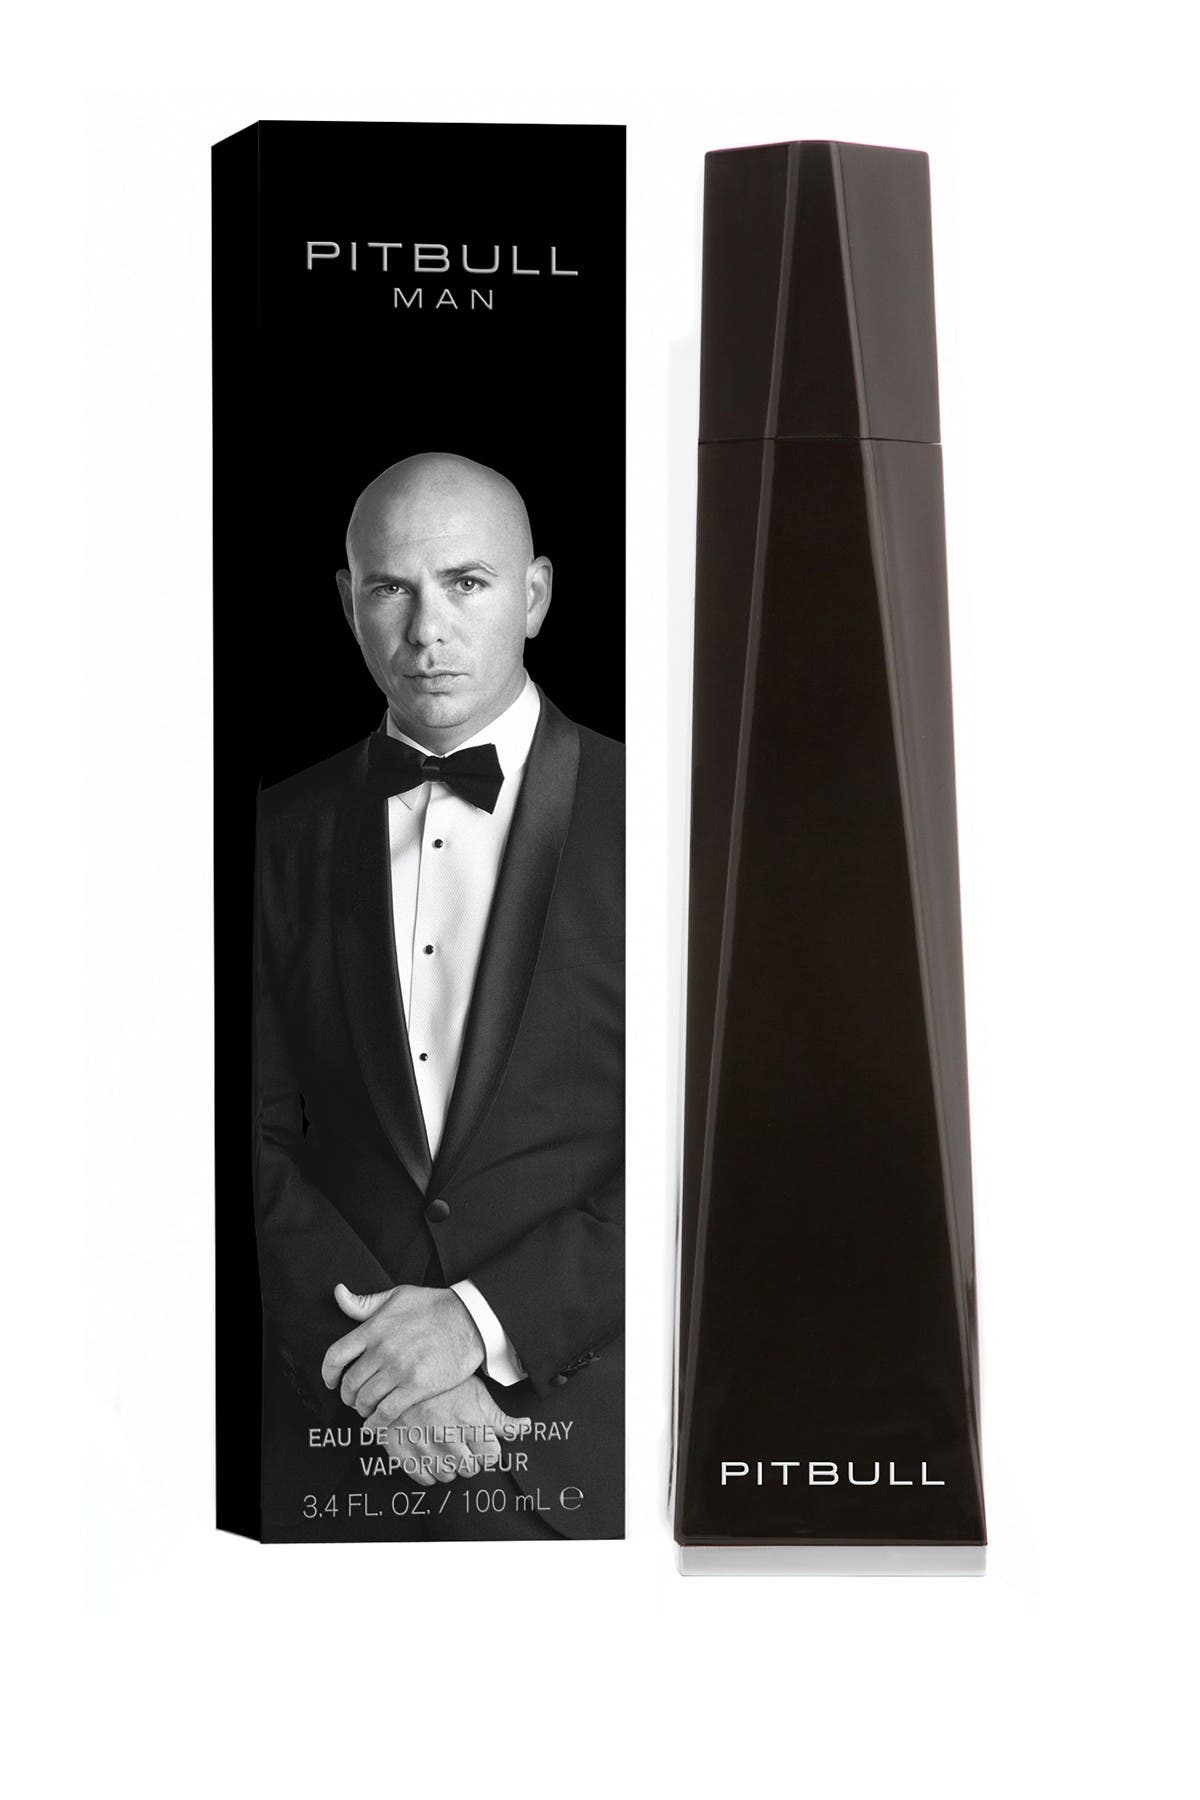 Image of PITBULL Man Eau de Parfum Spray - 3.4 fl. oz.